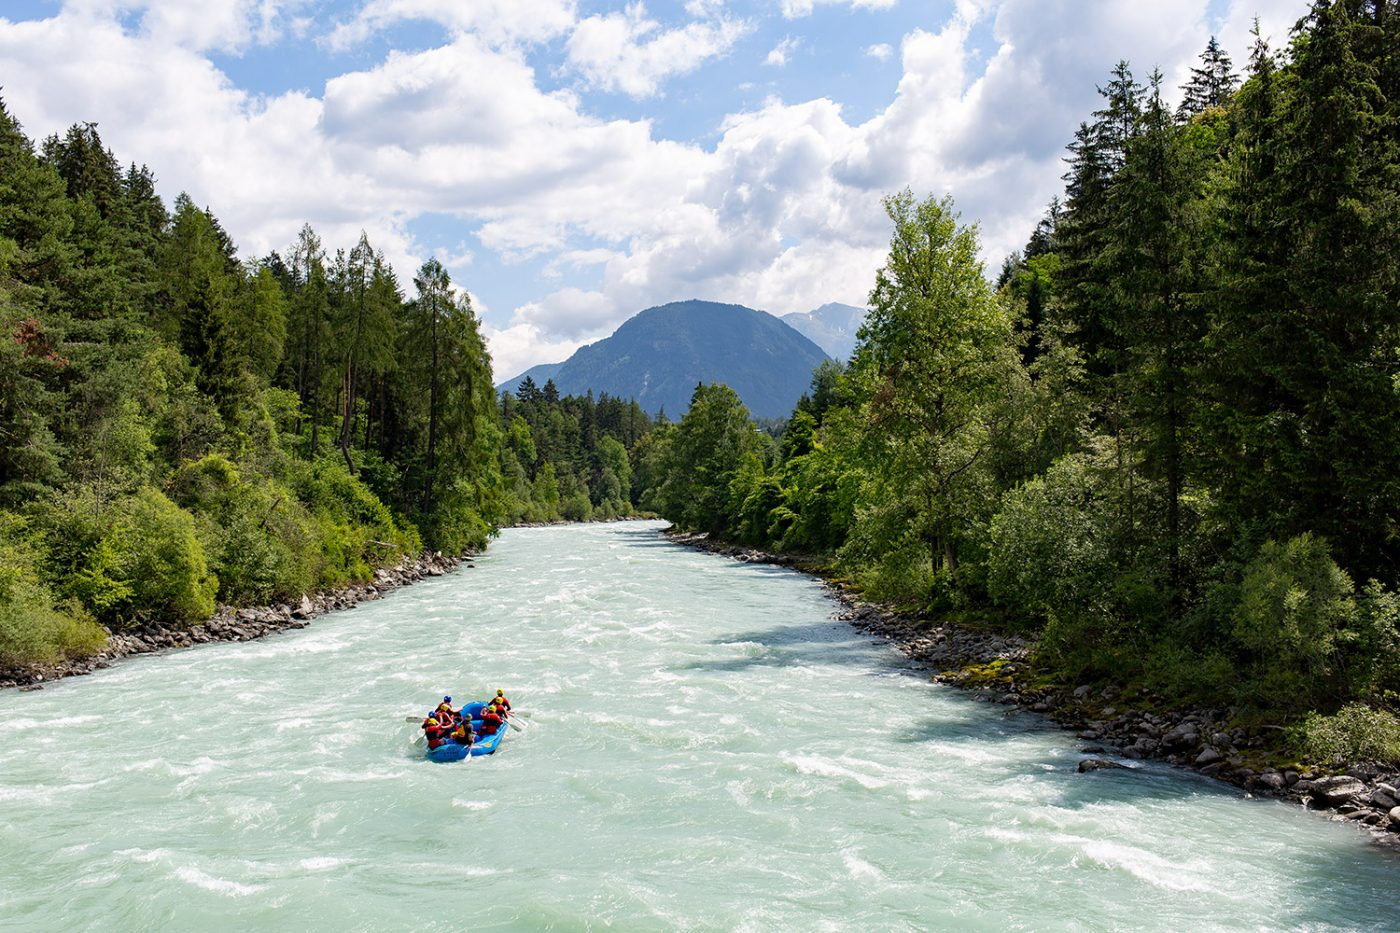 Beginner rafting tour